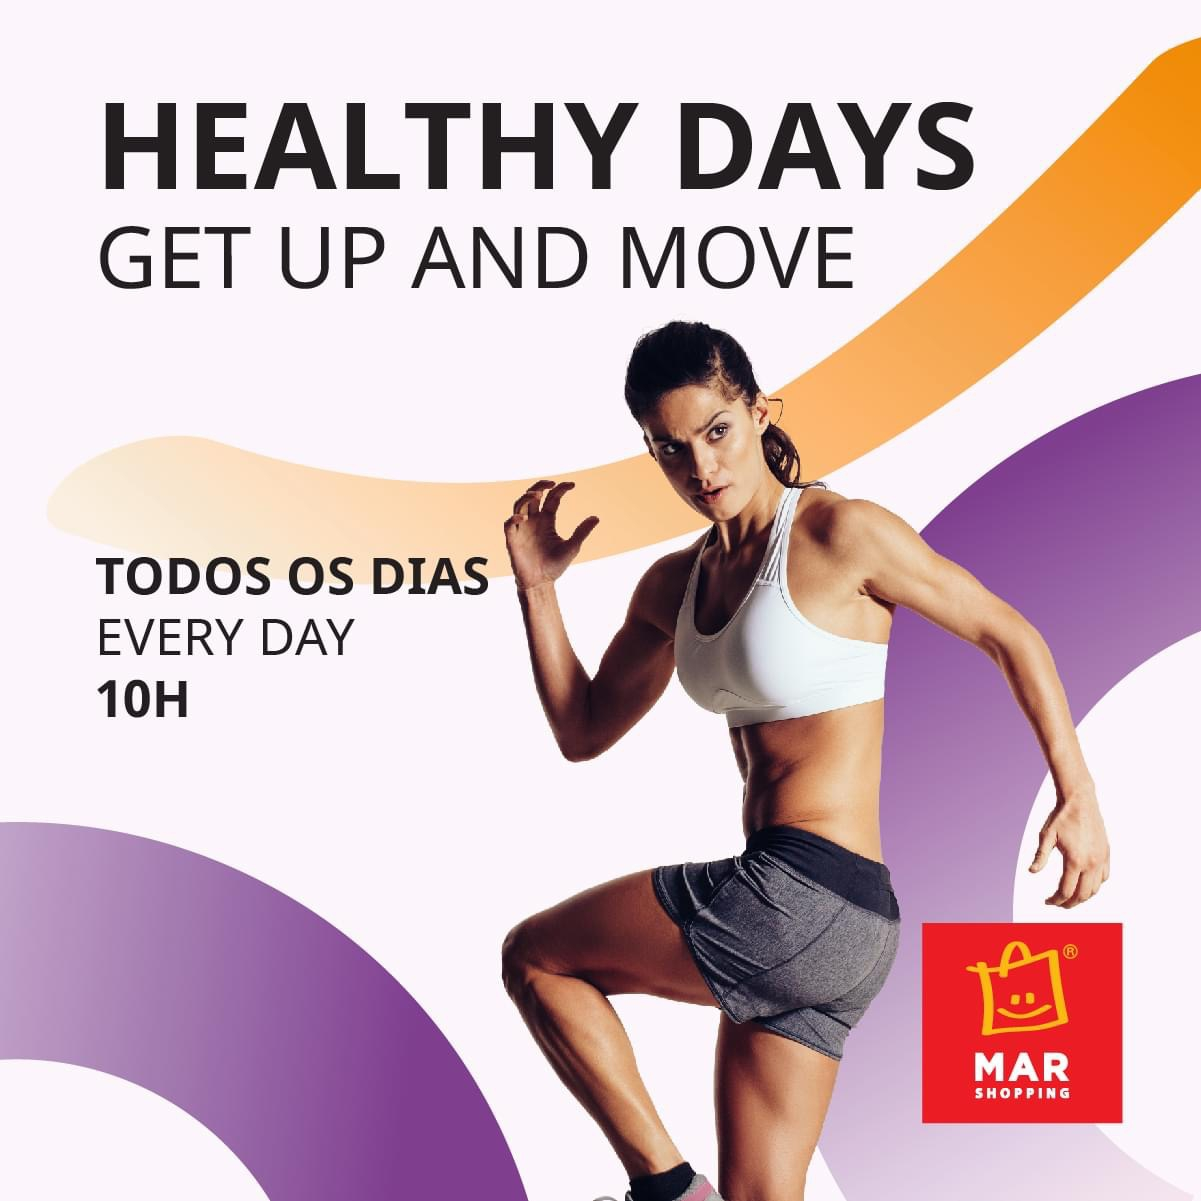 Healthy Days at MAR Shopping Algarve